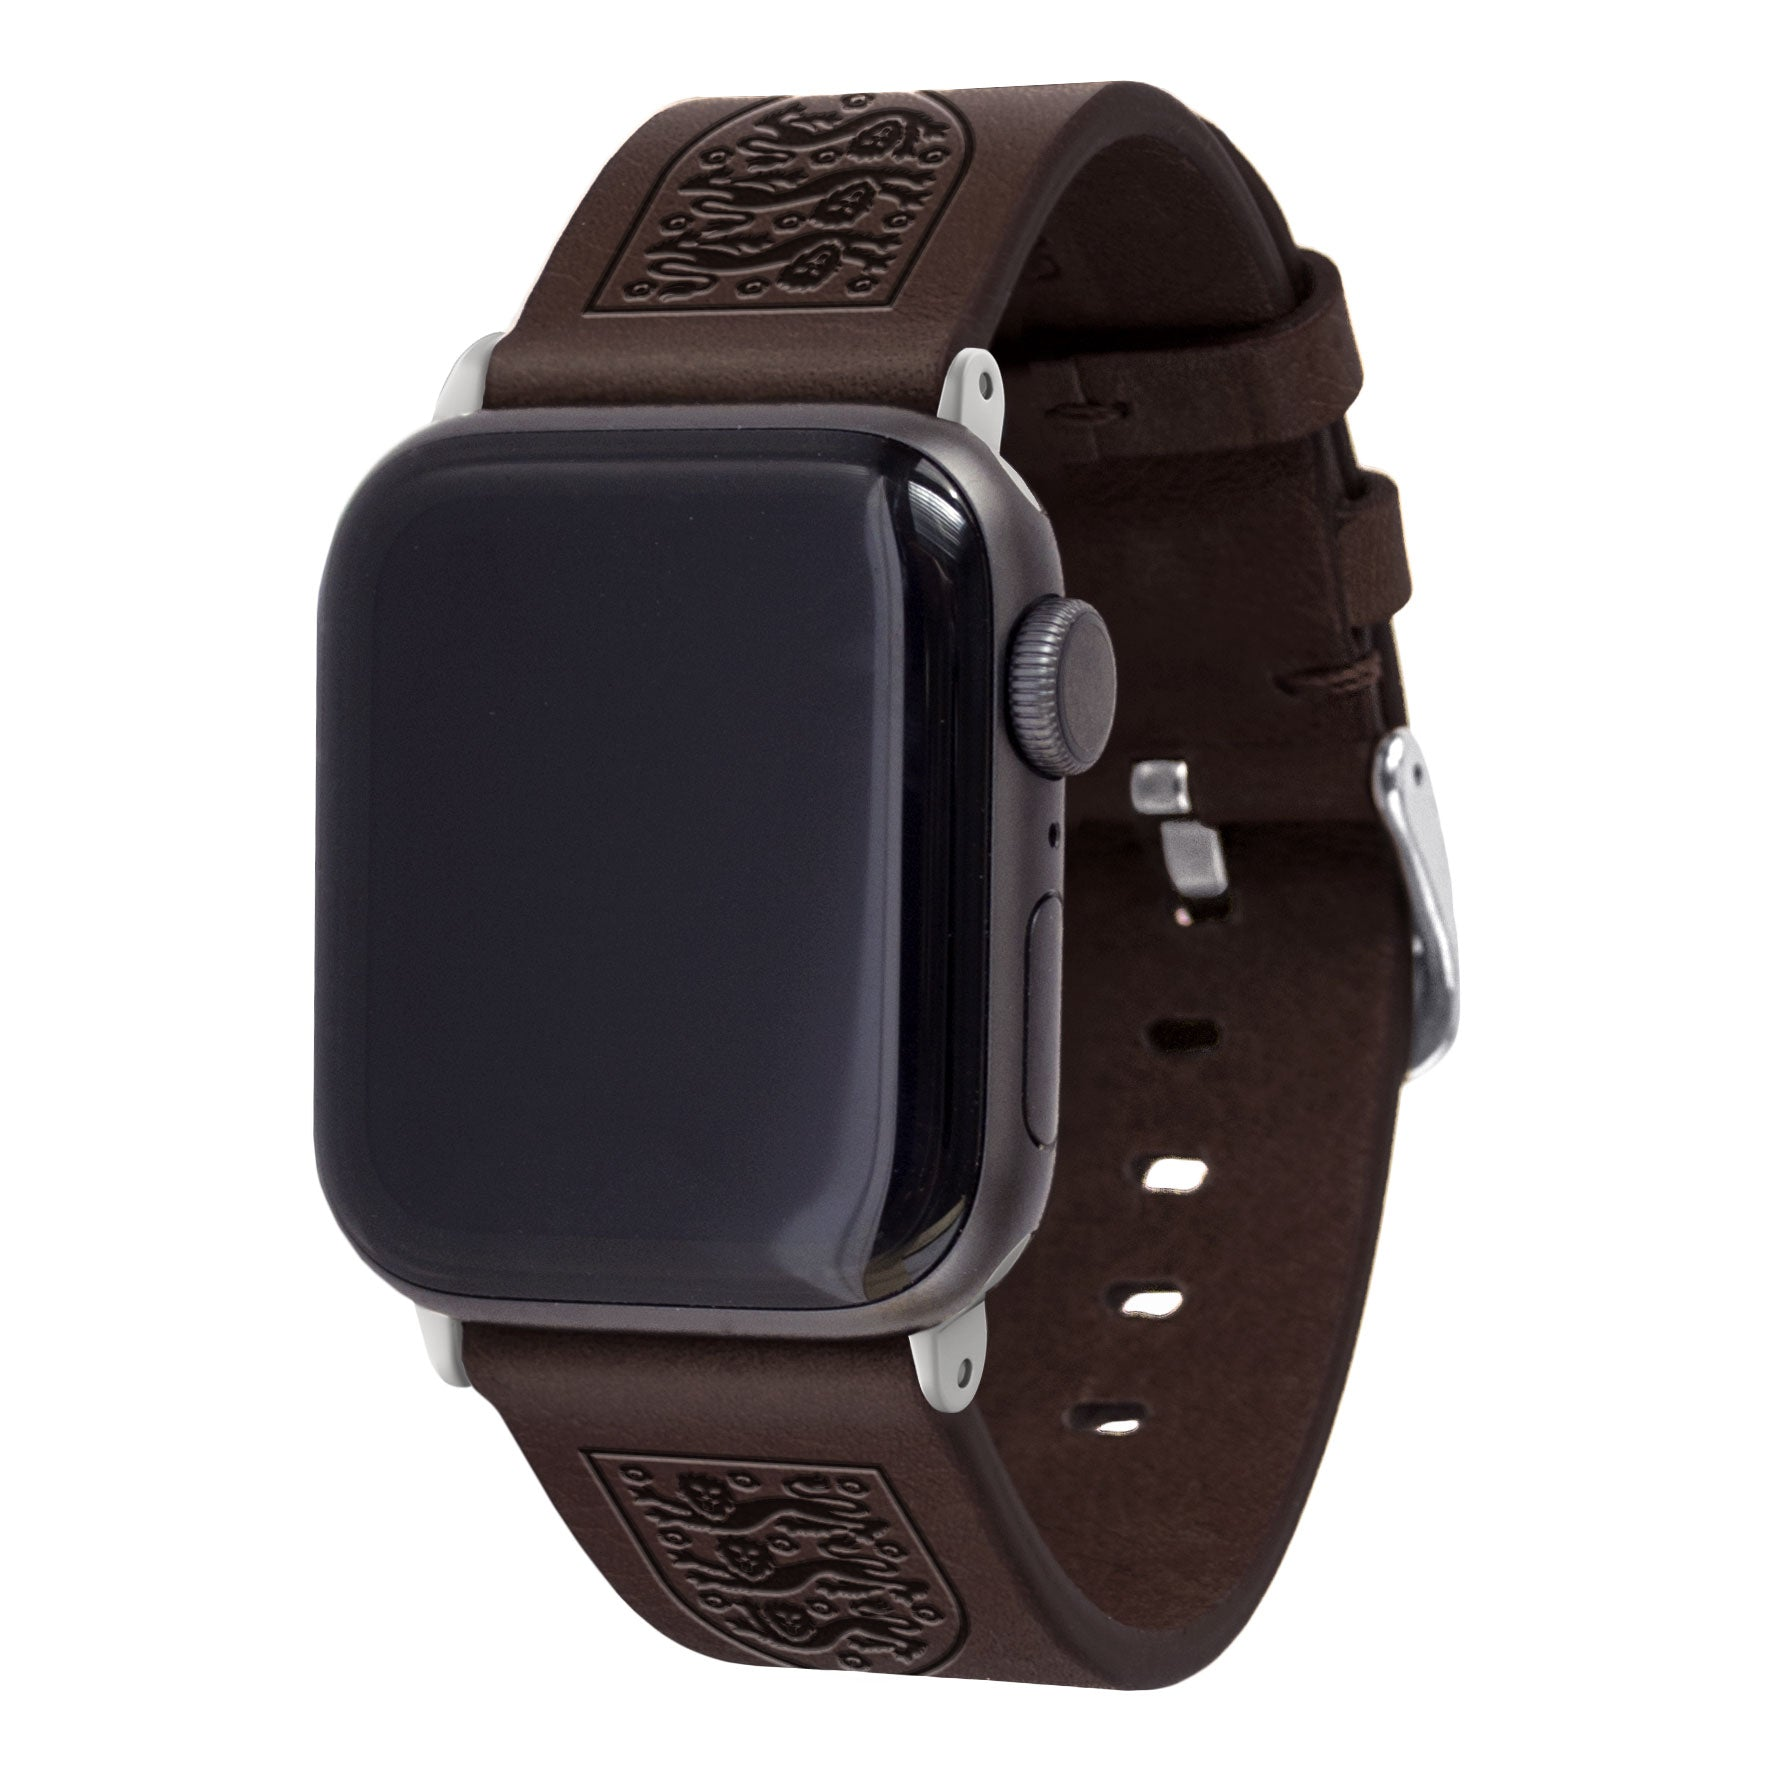 The FA Leather Apple Watch Band - Affinity Bands